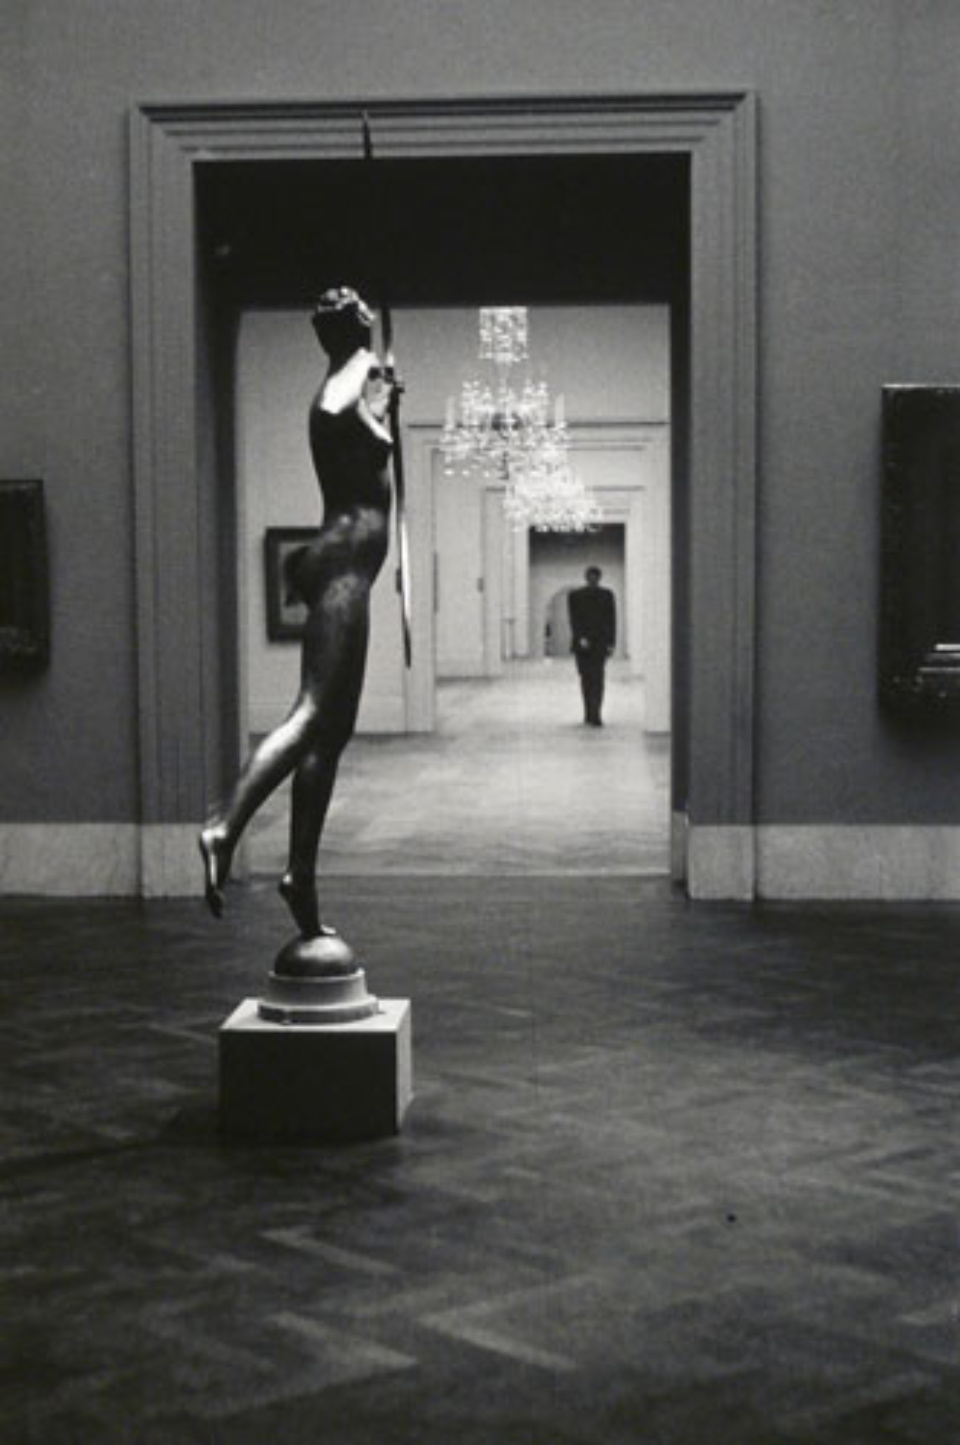 Elliott Erwitt Metropolitan Museum New York City, 1949 Gelatin Silver Print Signed, titled and dated Available in different formats